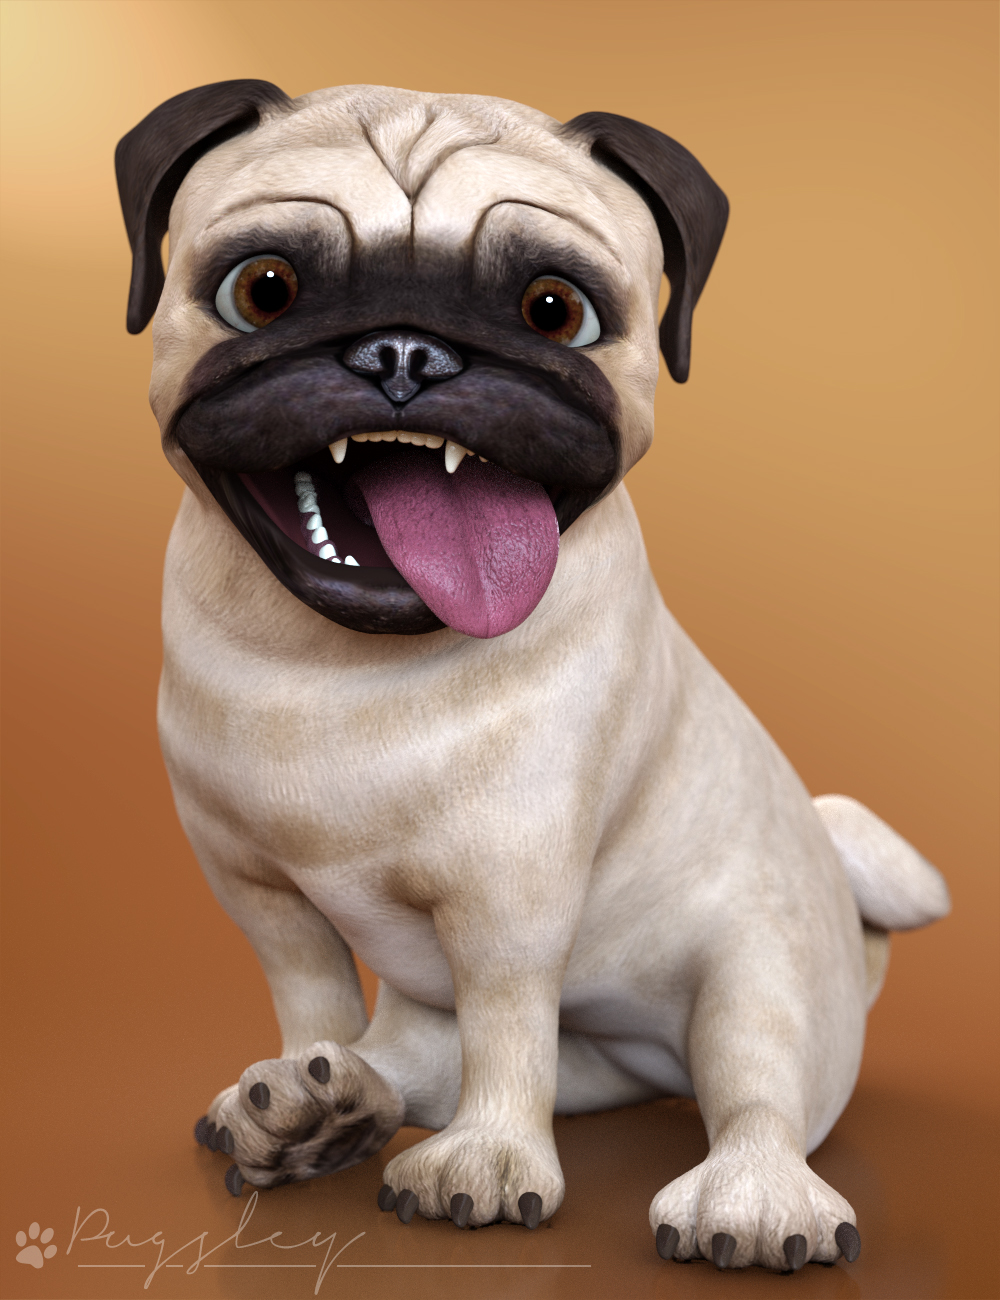 Pugsley the Stylized Pug by: 3D Universe, 3D Models by Daz 3D